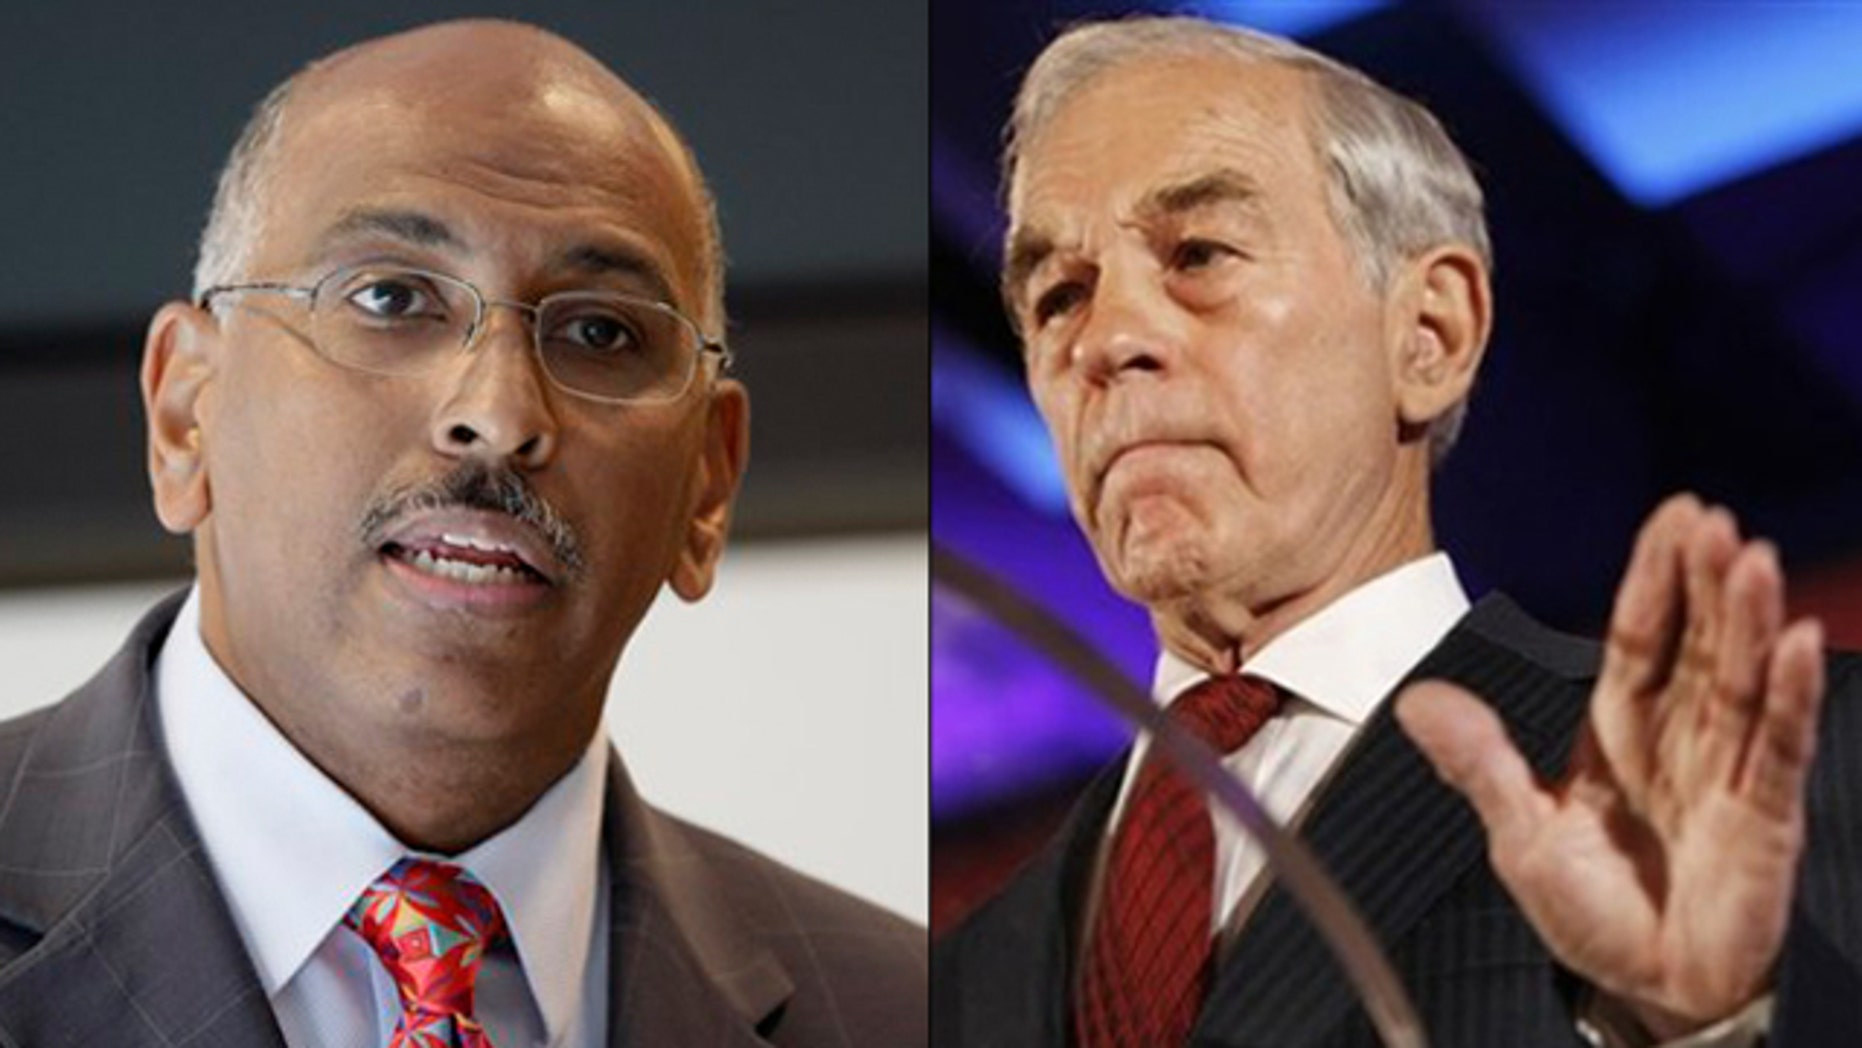 Shown here are RNC Chairman Michael Steele, left, and Rep. Ron Paul. (AP Photos)